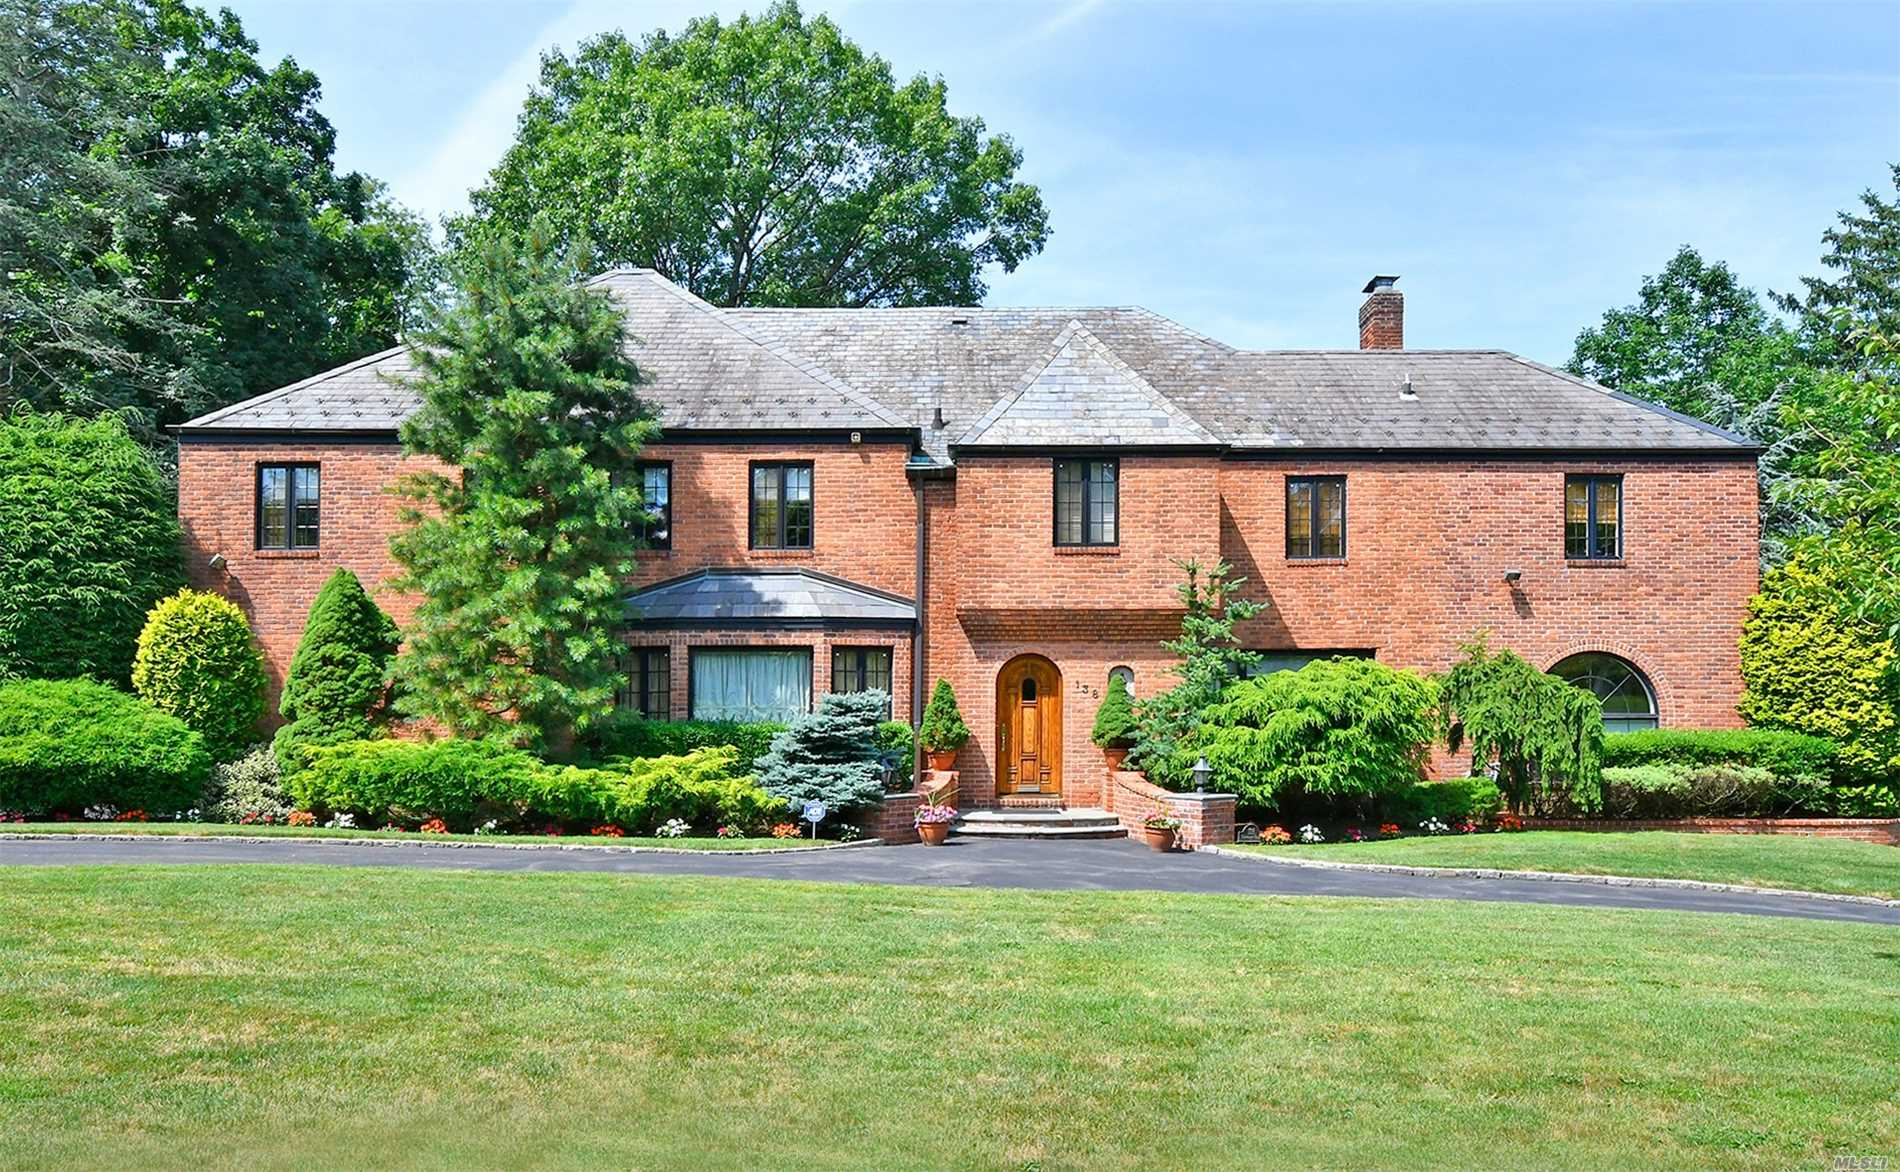 In The Heart Of Strathmore Village Lavish Classic Details Hallmark This Magnificent 6 Bedroom, 5.5 Full Bathroom All-Brick 5, 200 Sq Ft. English Tudor. Situated On Approx. .37Of Park-Like Property, This Home Features Supreme Design Details And Quintessential Elegance.